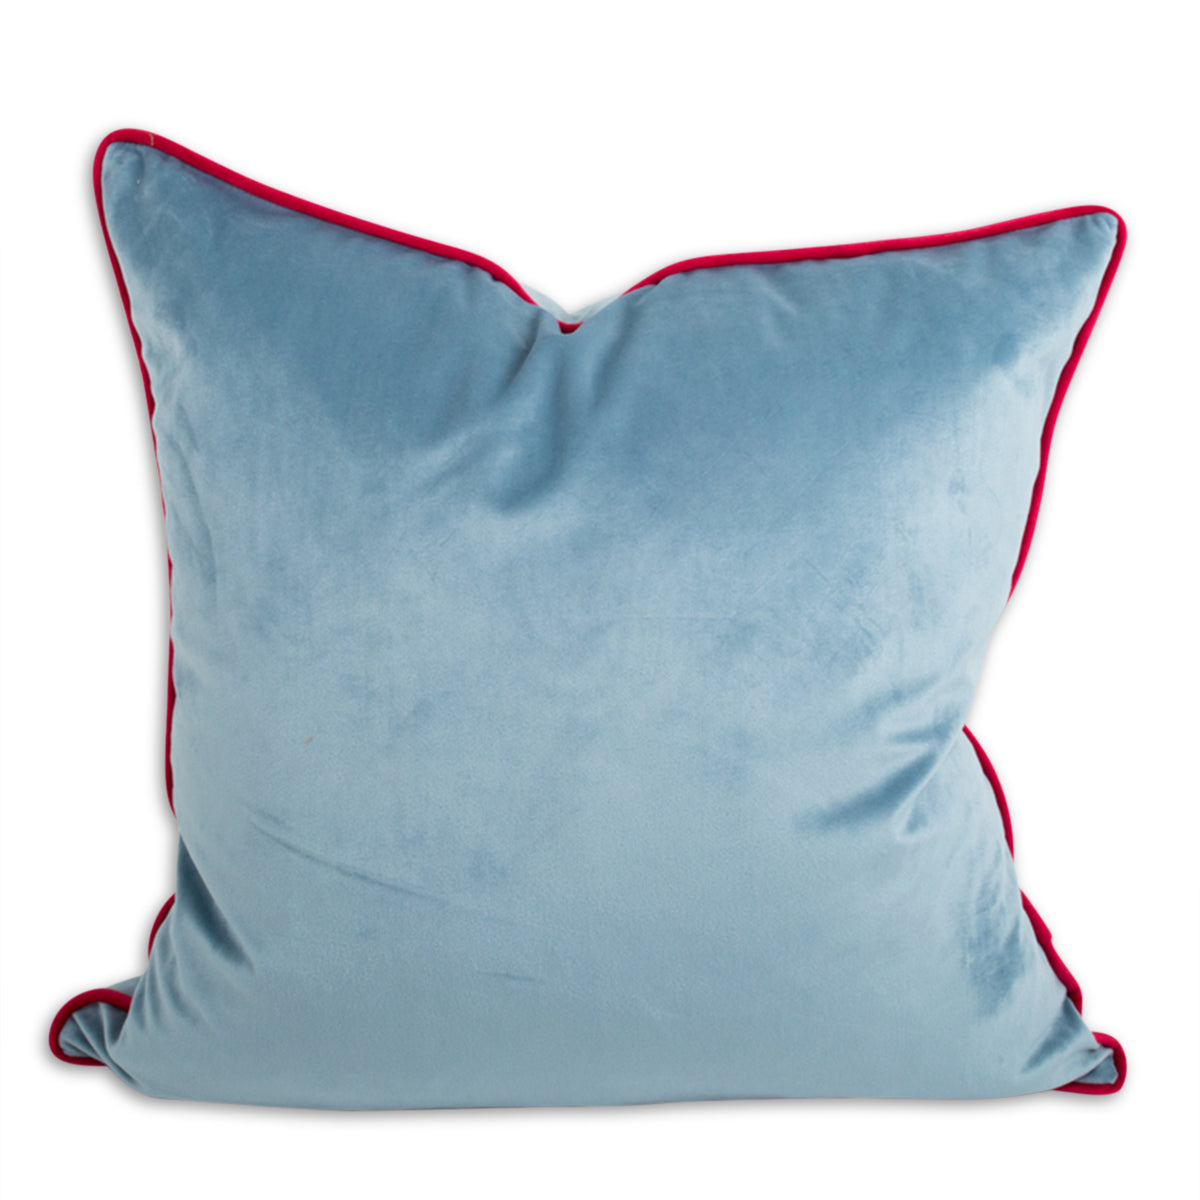 Yves Velvet Pillow - Light Blue + Cherry